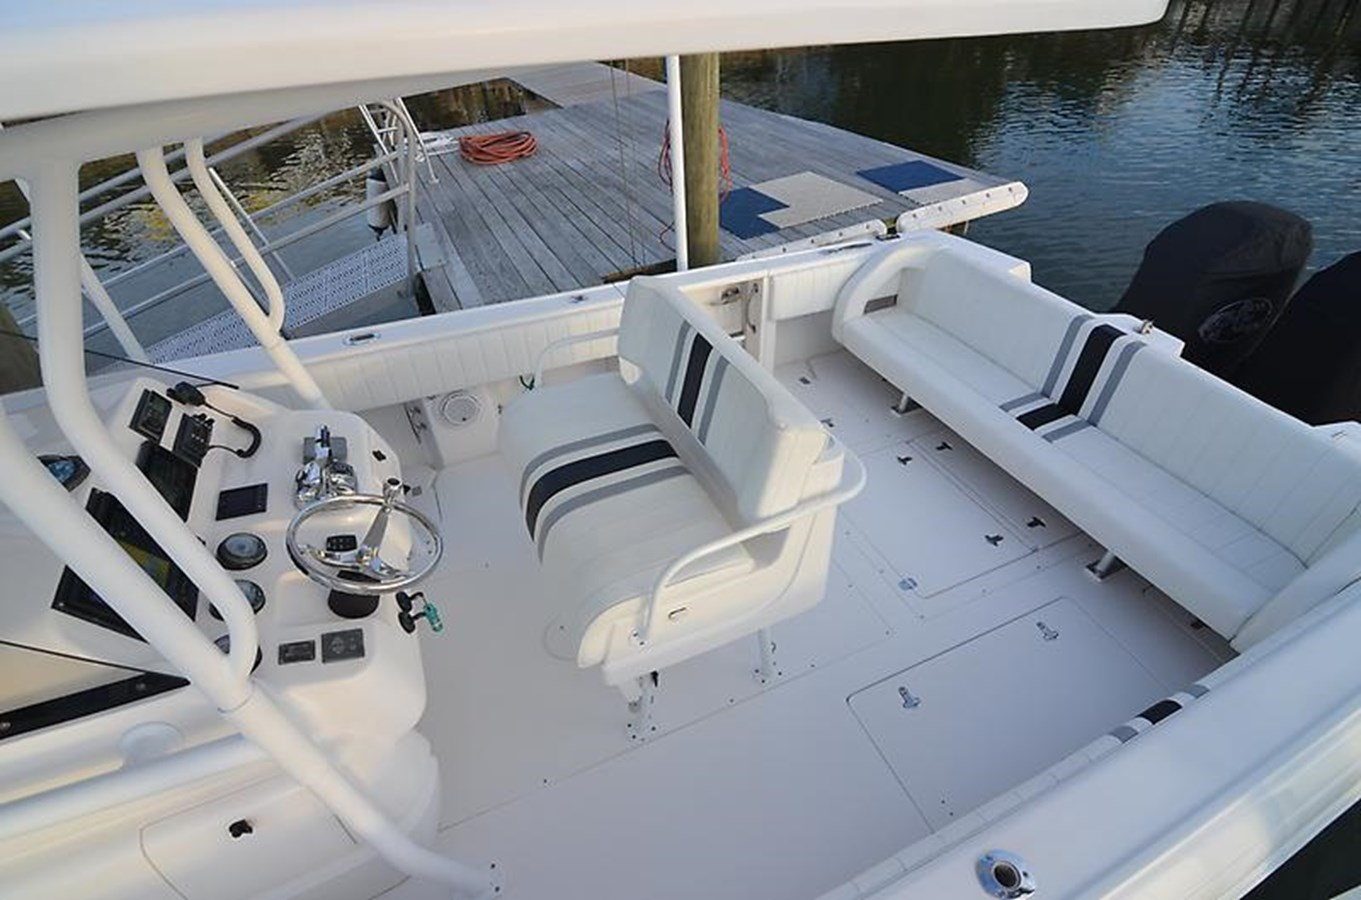 35 Intrepid 2008 with Repower - 35 INTREPID For Sale